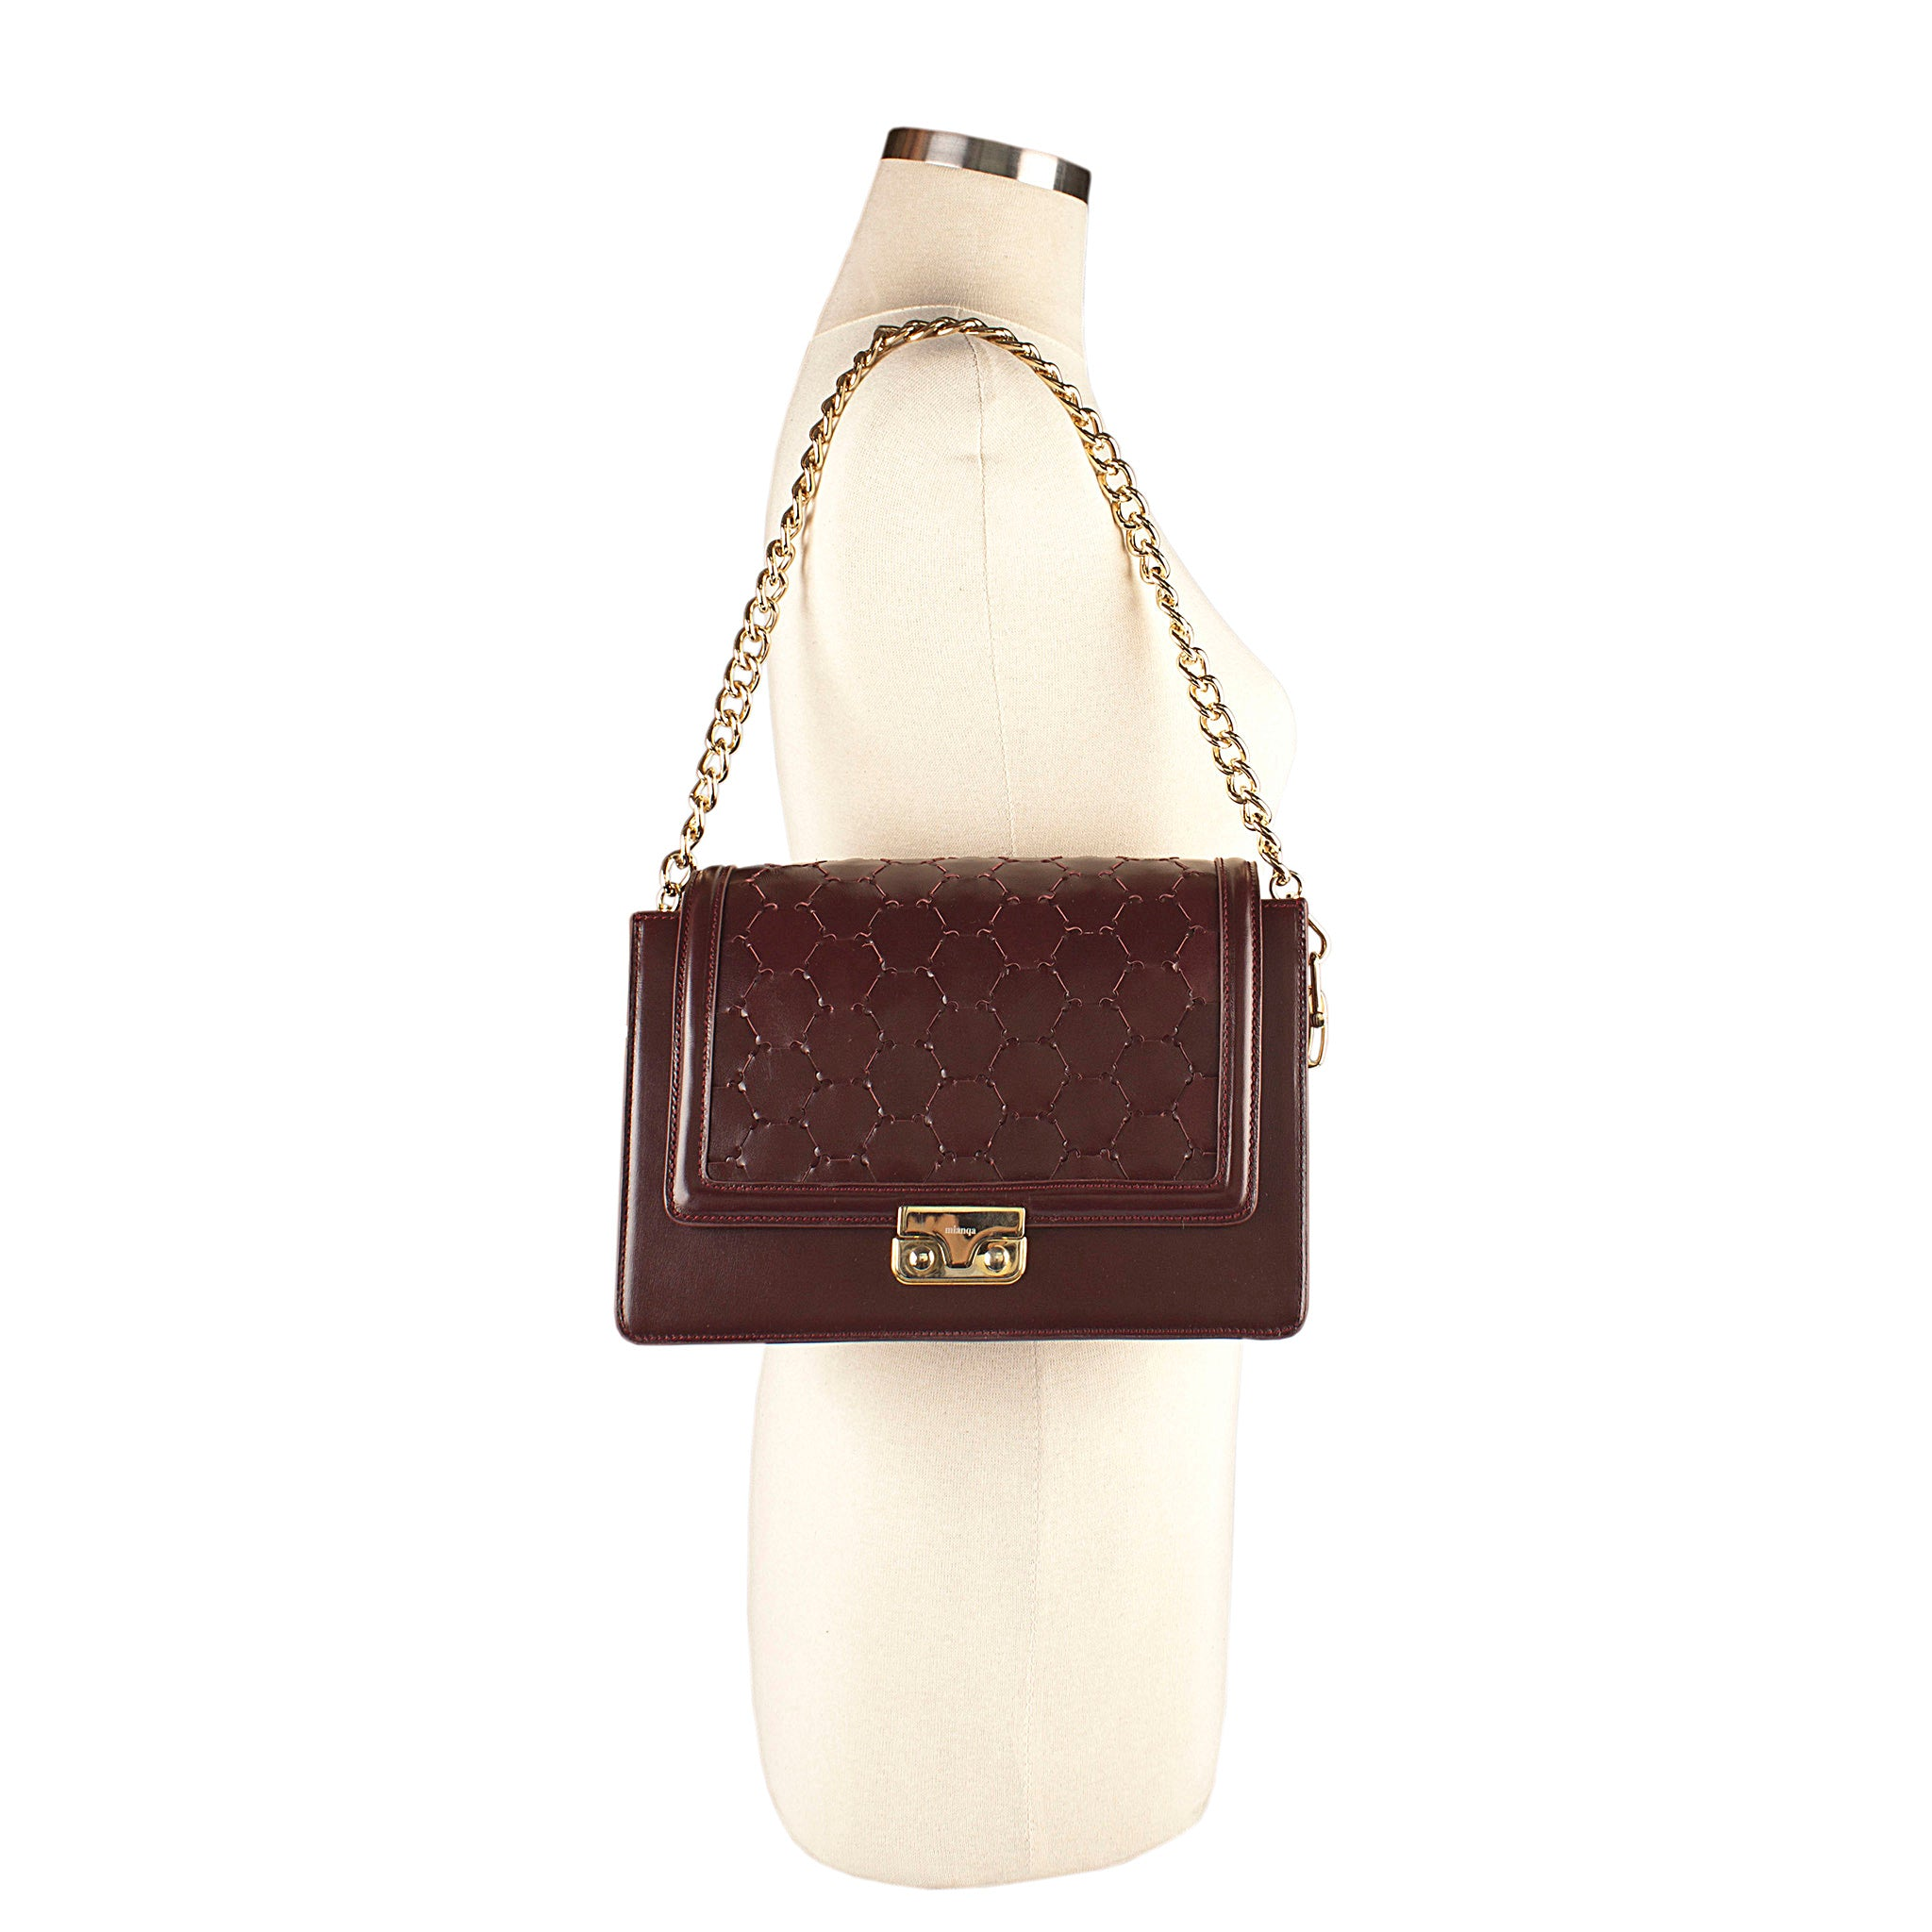 bordeaux luxury leather crossbody bag with handwoven flap and chain handle